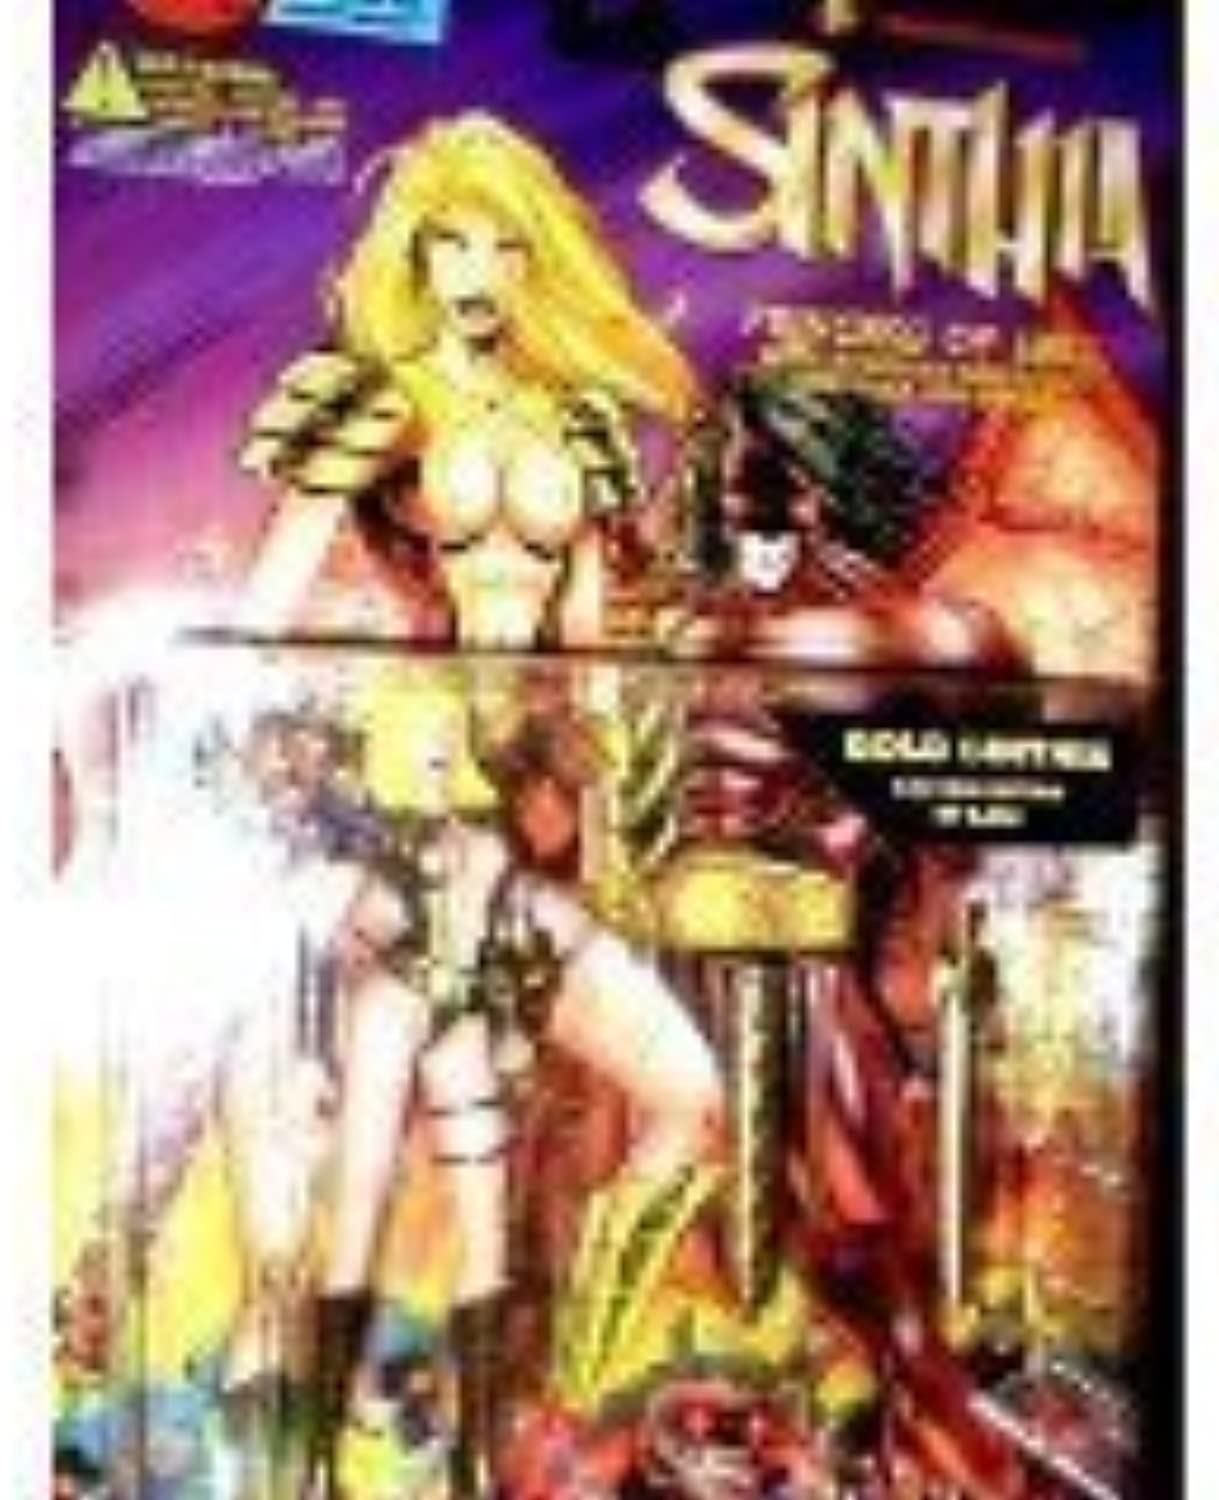 gold Sinthia Limited Edition Action Figure - Lightning Comics' Sinthia  Princess of Hell Series by Skybolt Toyz